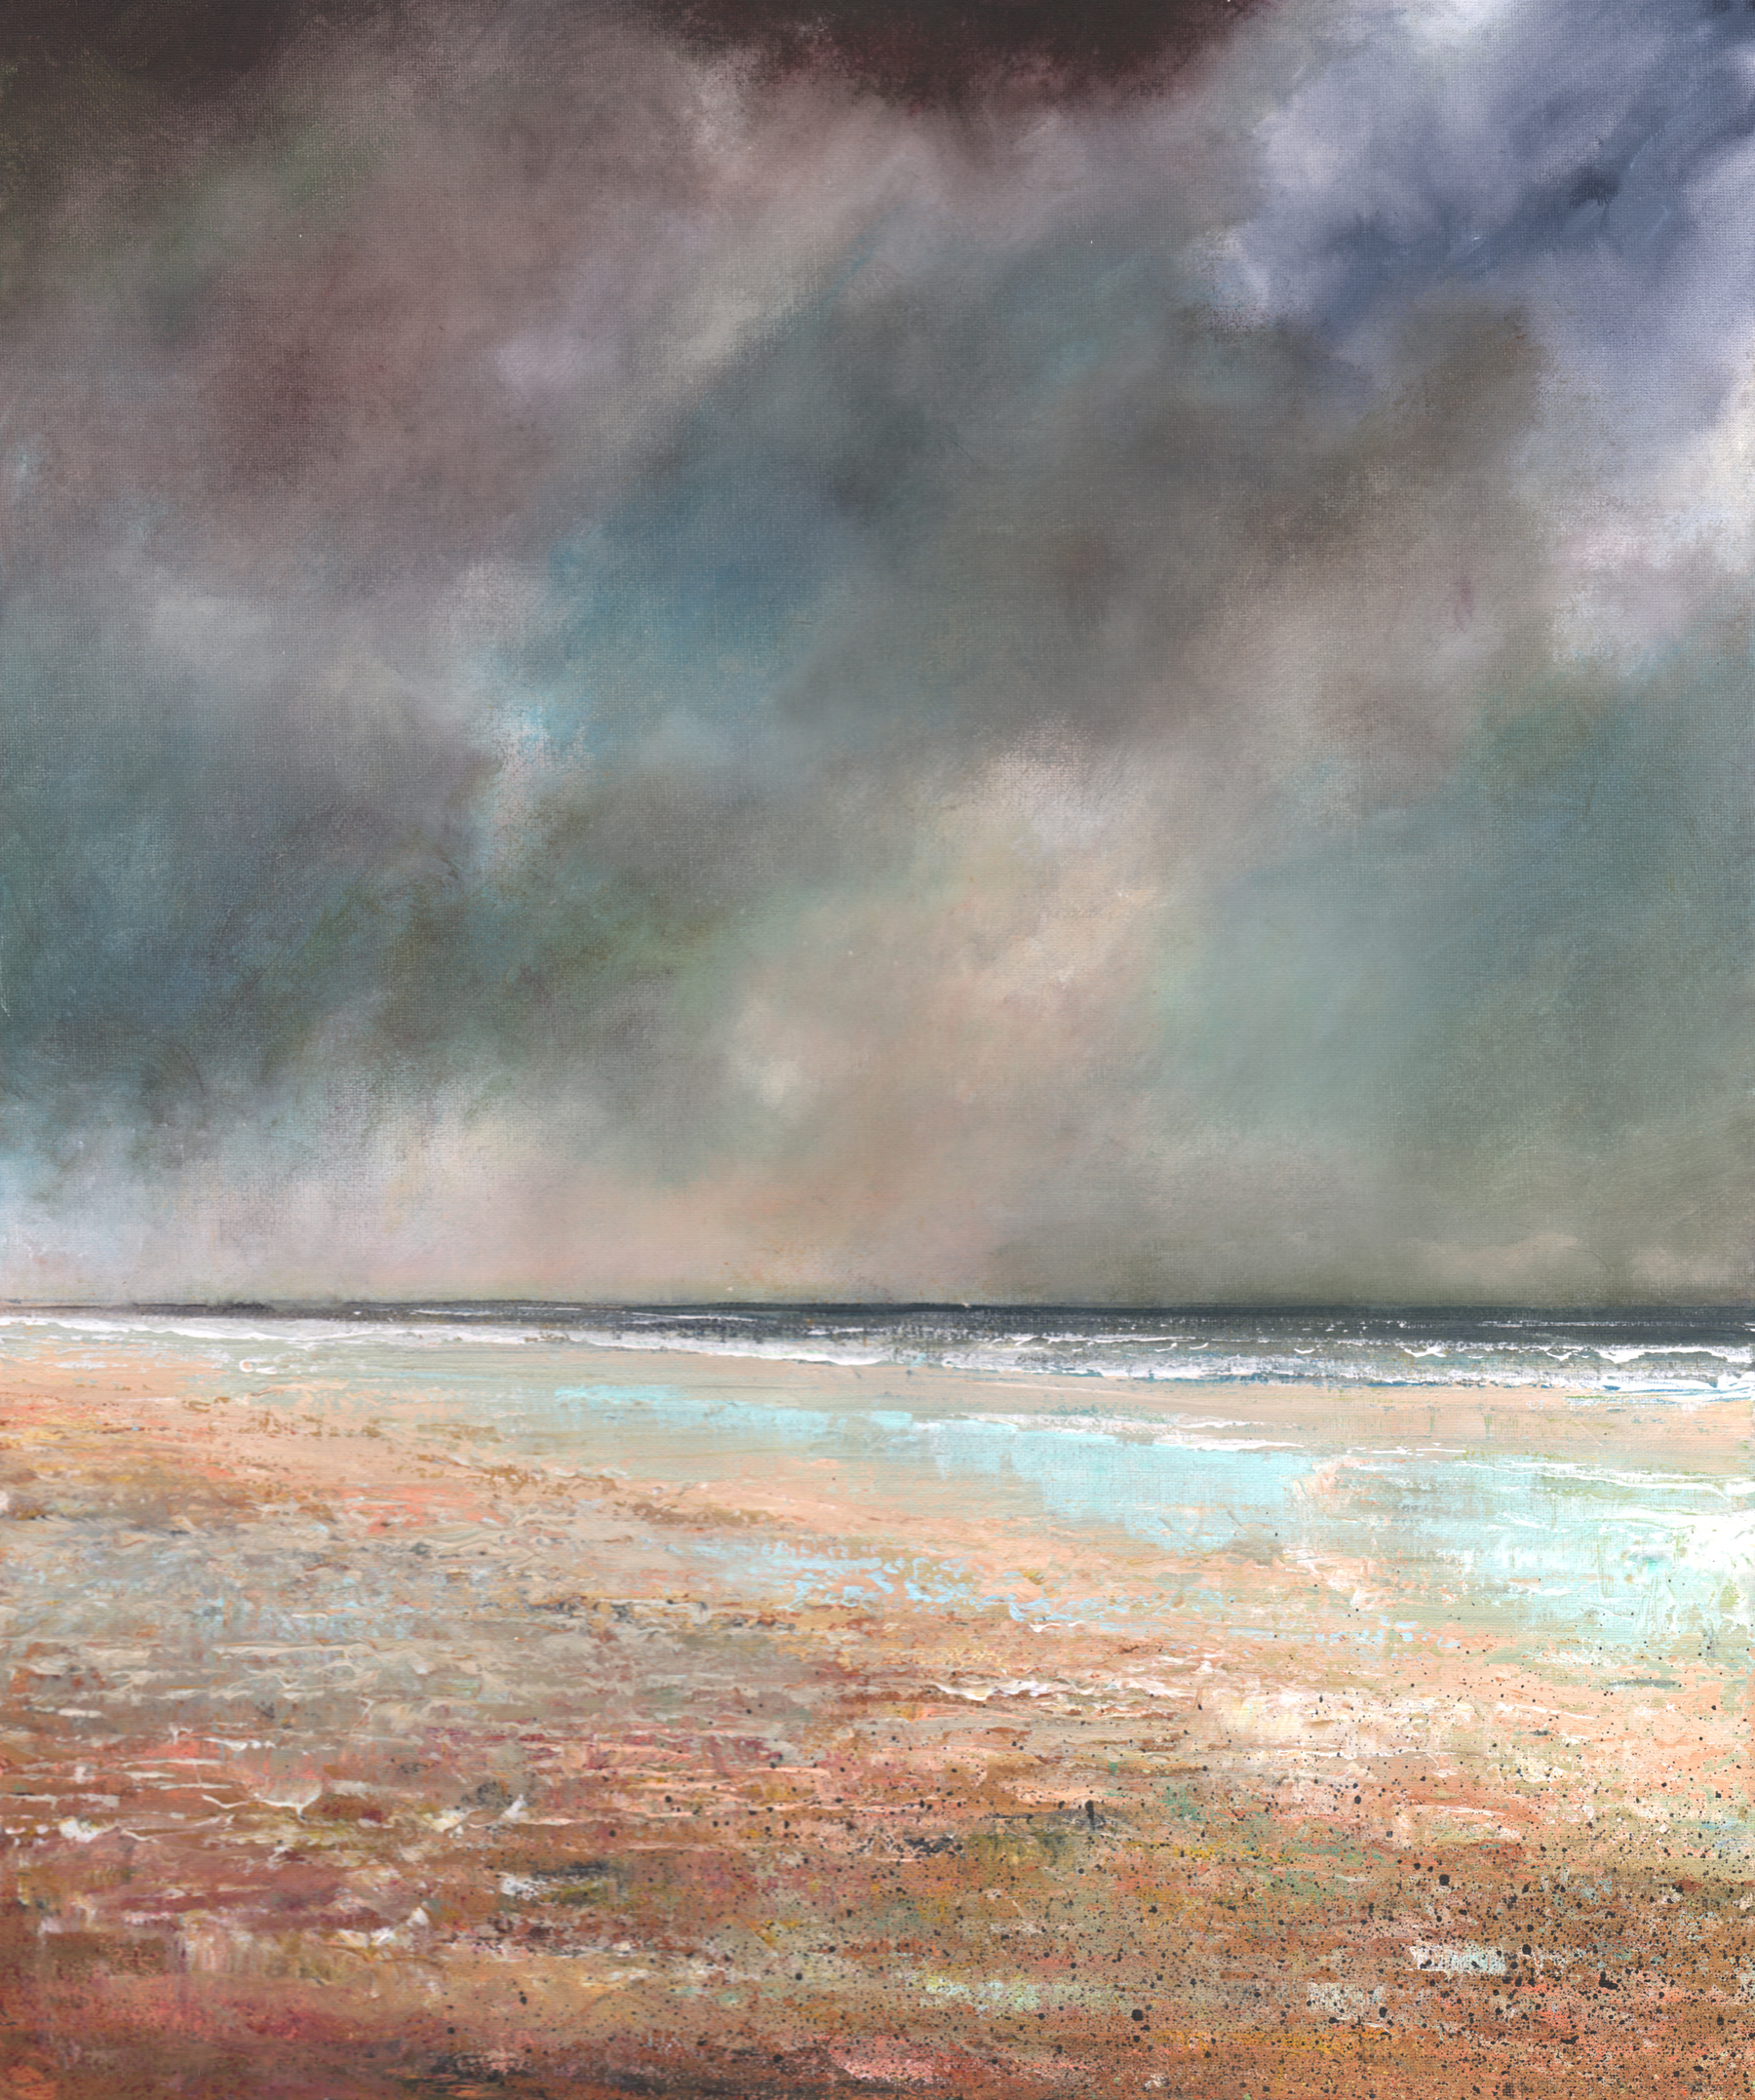 Cold Sea by John Tregembo at the Saffron Walden Gallery